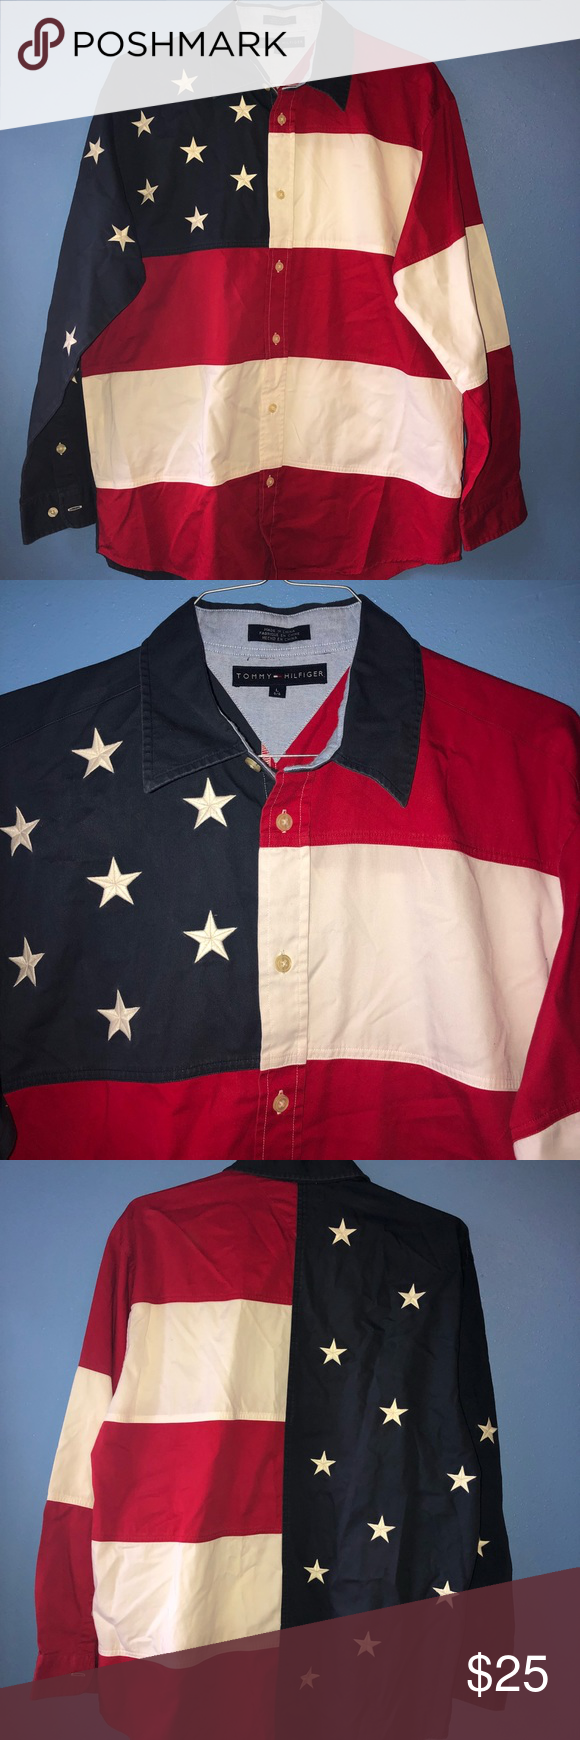 6677838c Tommy Hilfiger USA Vintage Shirt Tommy Hilfiger Vintage USA Shirt. Size L.  Has been